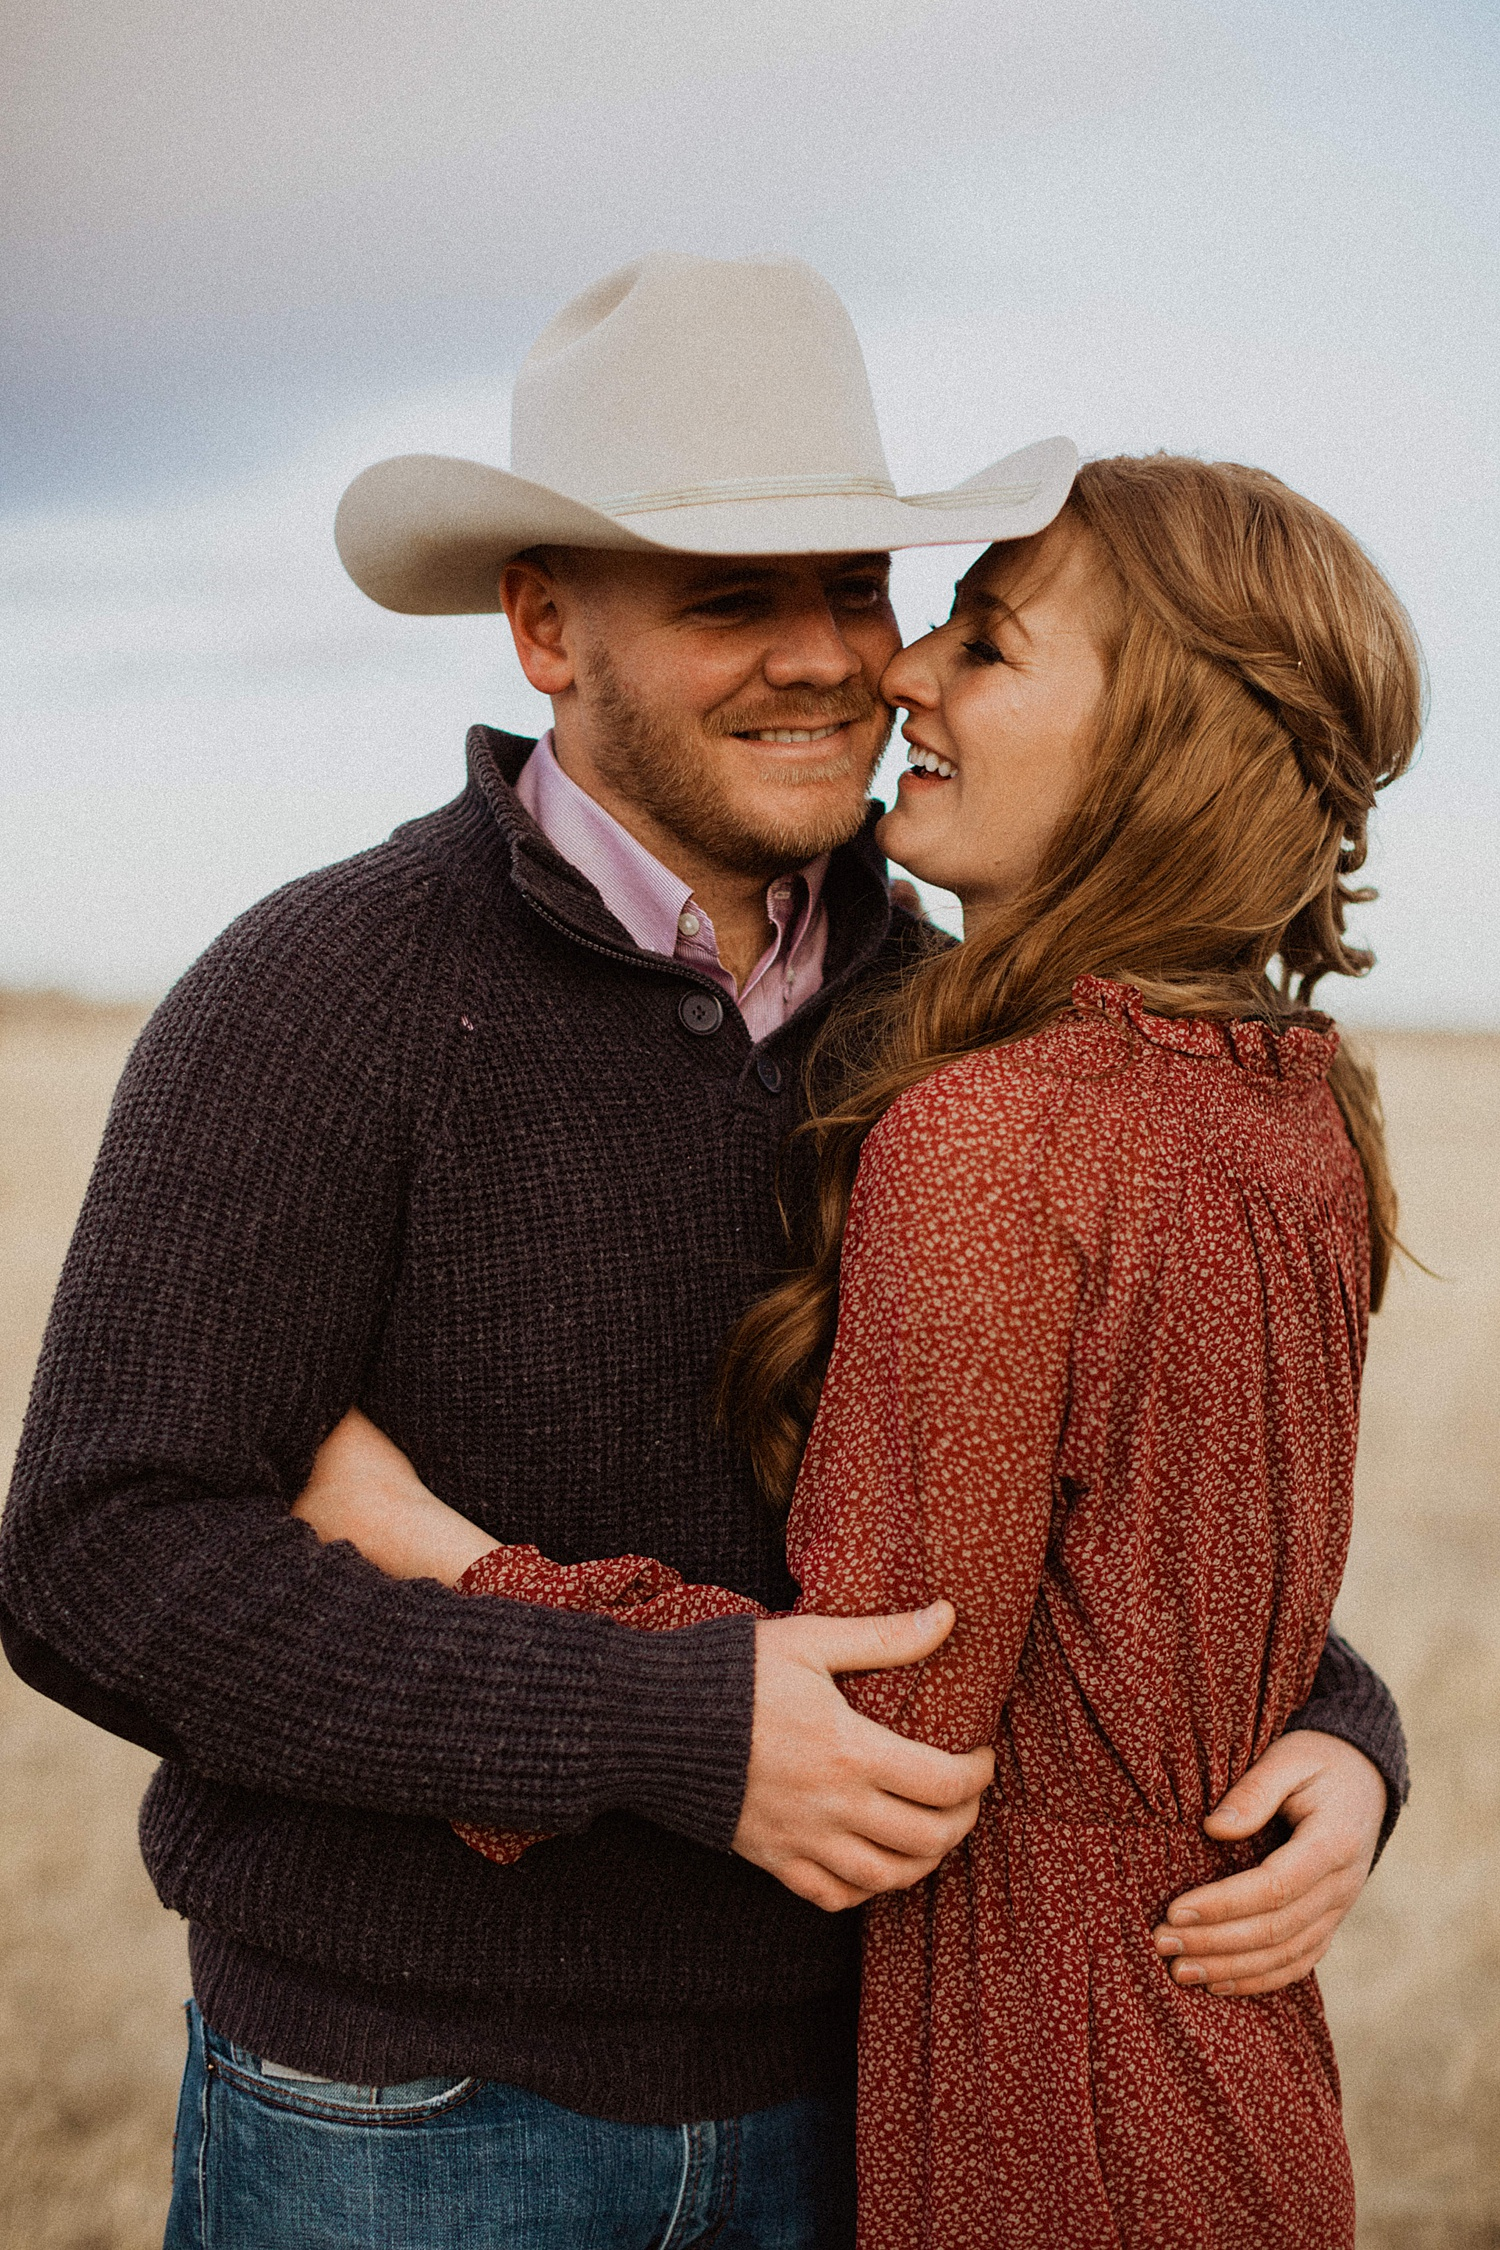 Engagement Photos | Wyoming Mountains | Engagement Outfits | Wyoming Photography | Meeteetse Wyoming | Cassie Madden Photography